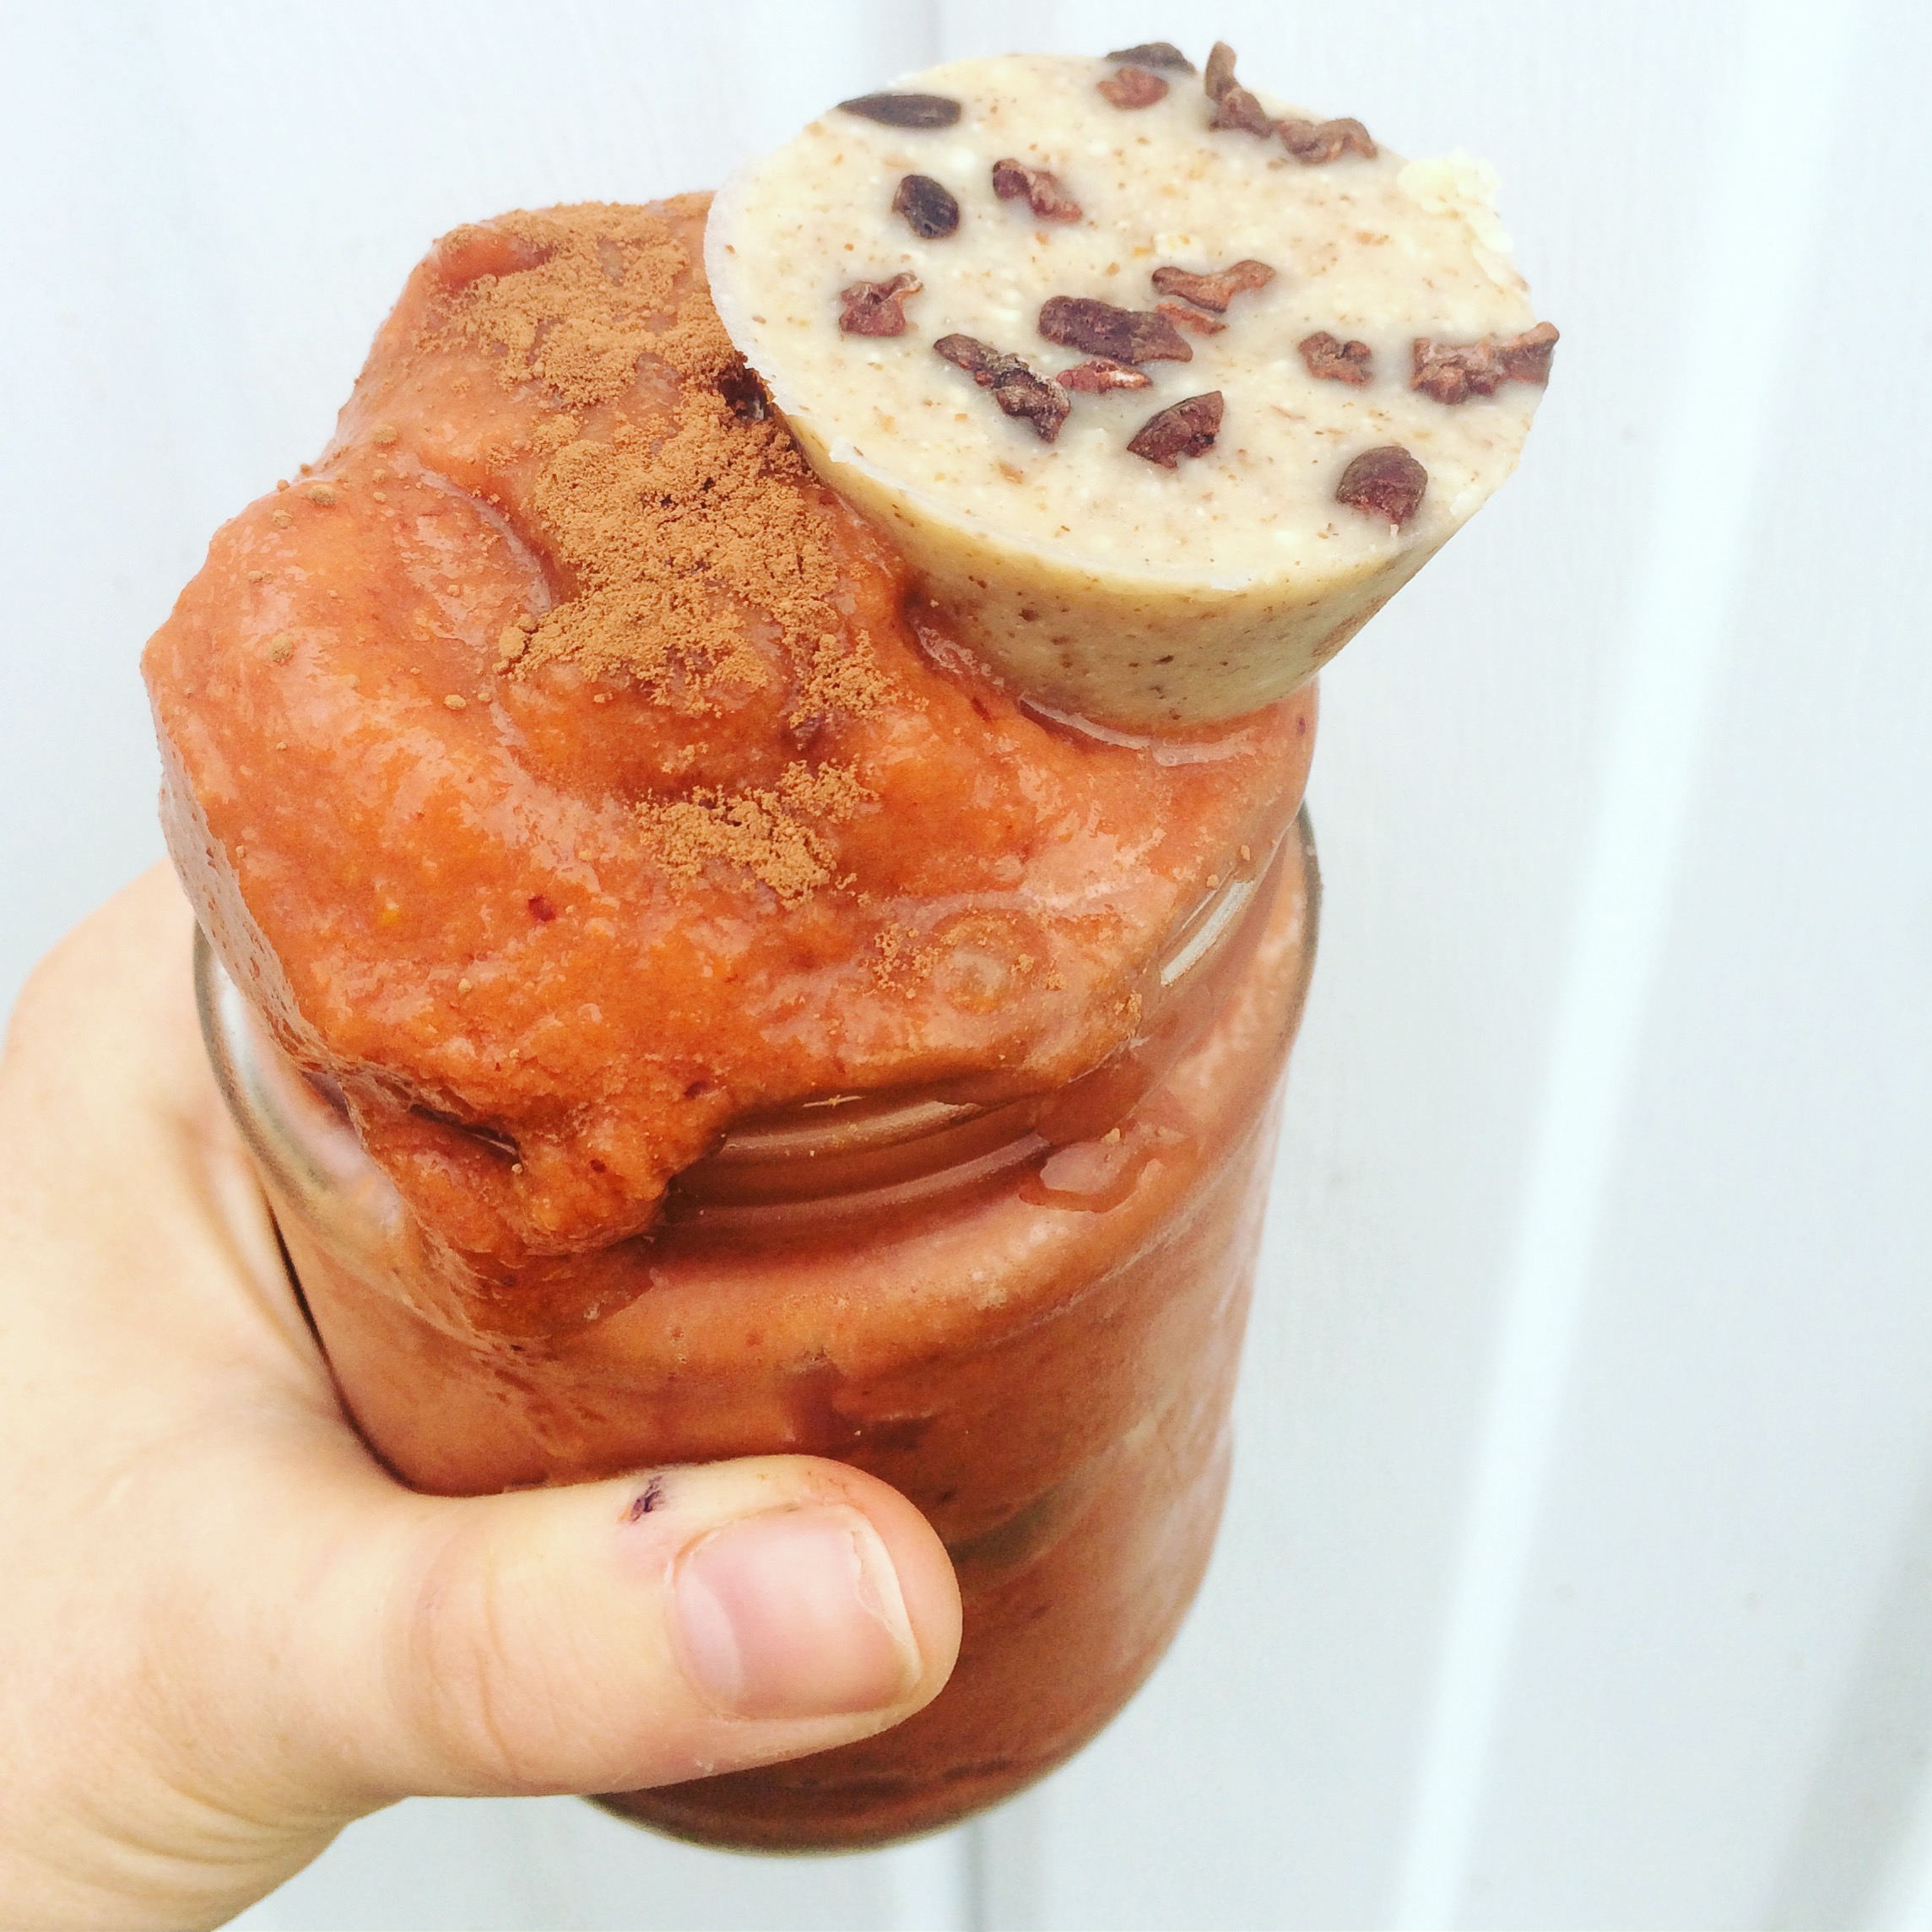 Cocoa, Carrot, & Cauli - 1 large carrot, 1/3 c butternut squash (steamed & frozen), 1/2 c cauliflower (steamed & frozen), 5 cherries (frozen), 1 T collagen protein powder, 1/2 t maca powder, 1 T cocoa powder, 1/2 c almond milk - Blend until thick and smooth. Top with a fat bomb and a sprinkle of cocoa powder. Makes 1 serving.